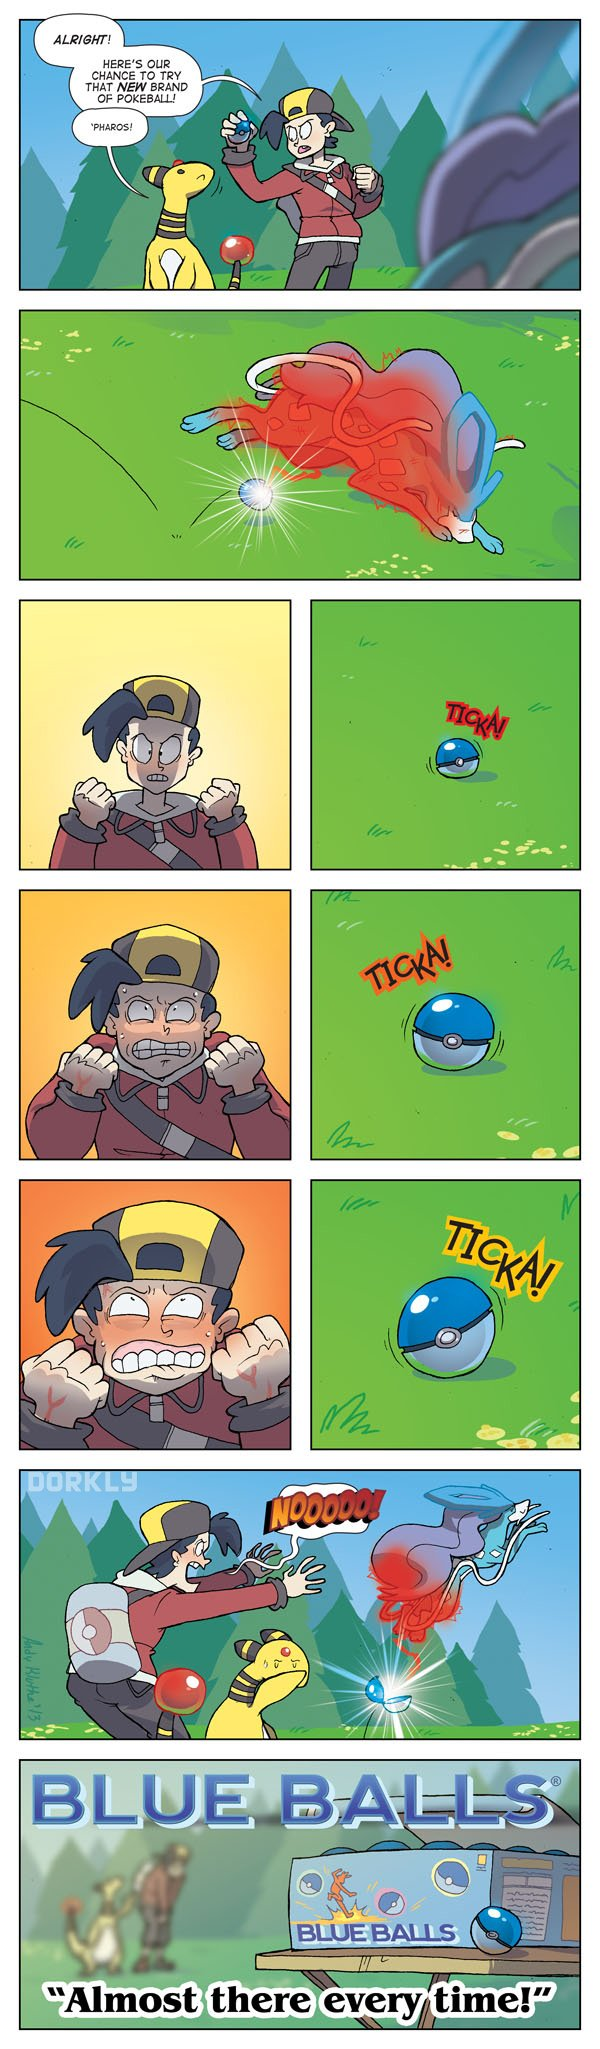 Trying to catch Pokemon with Blue Balls